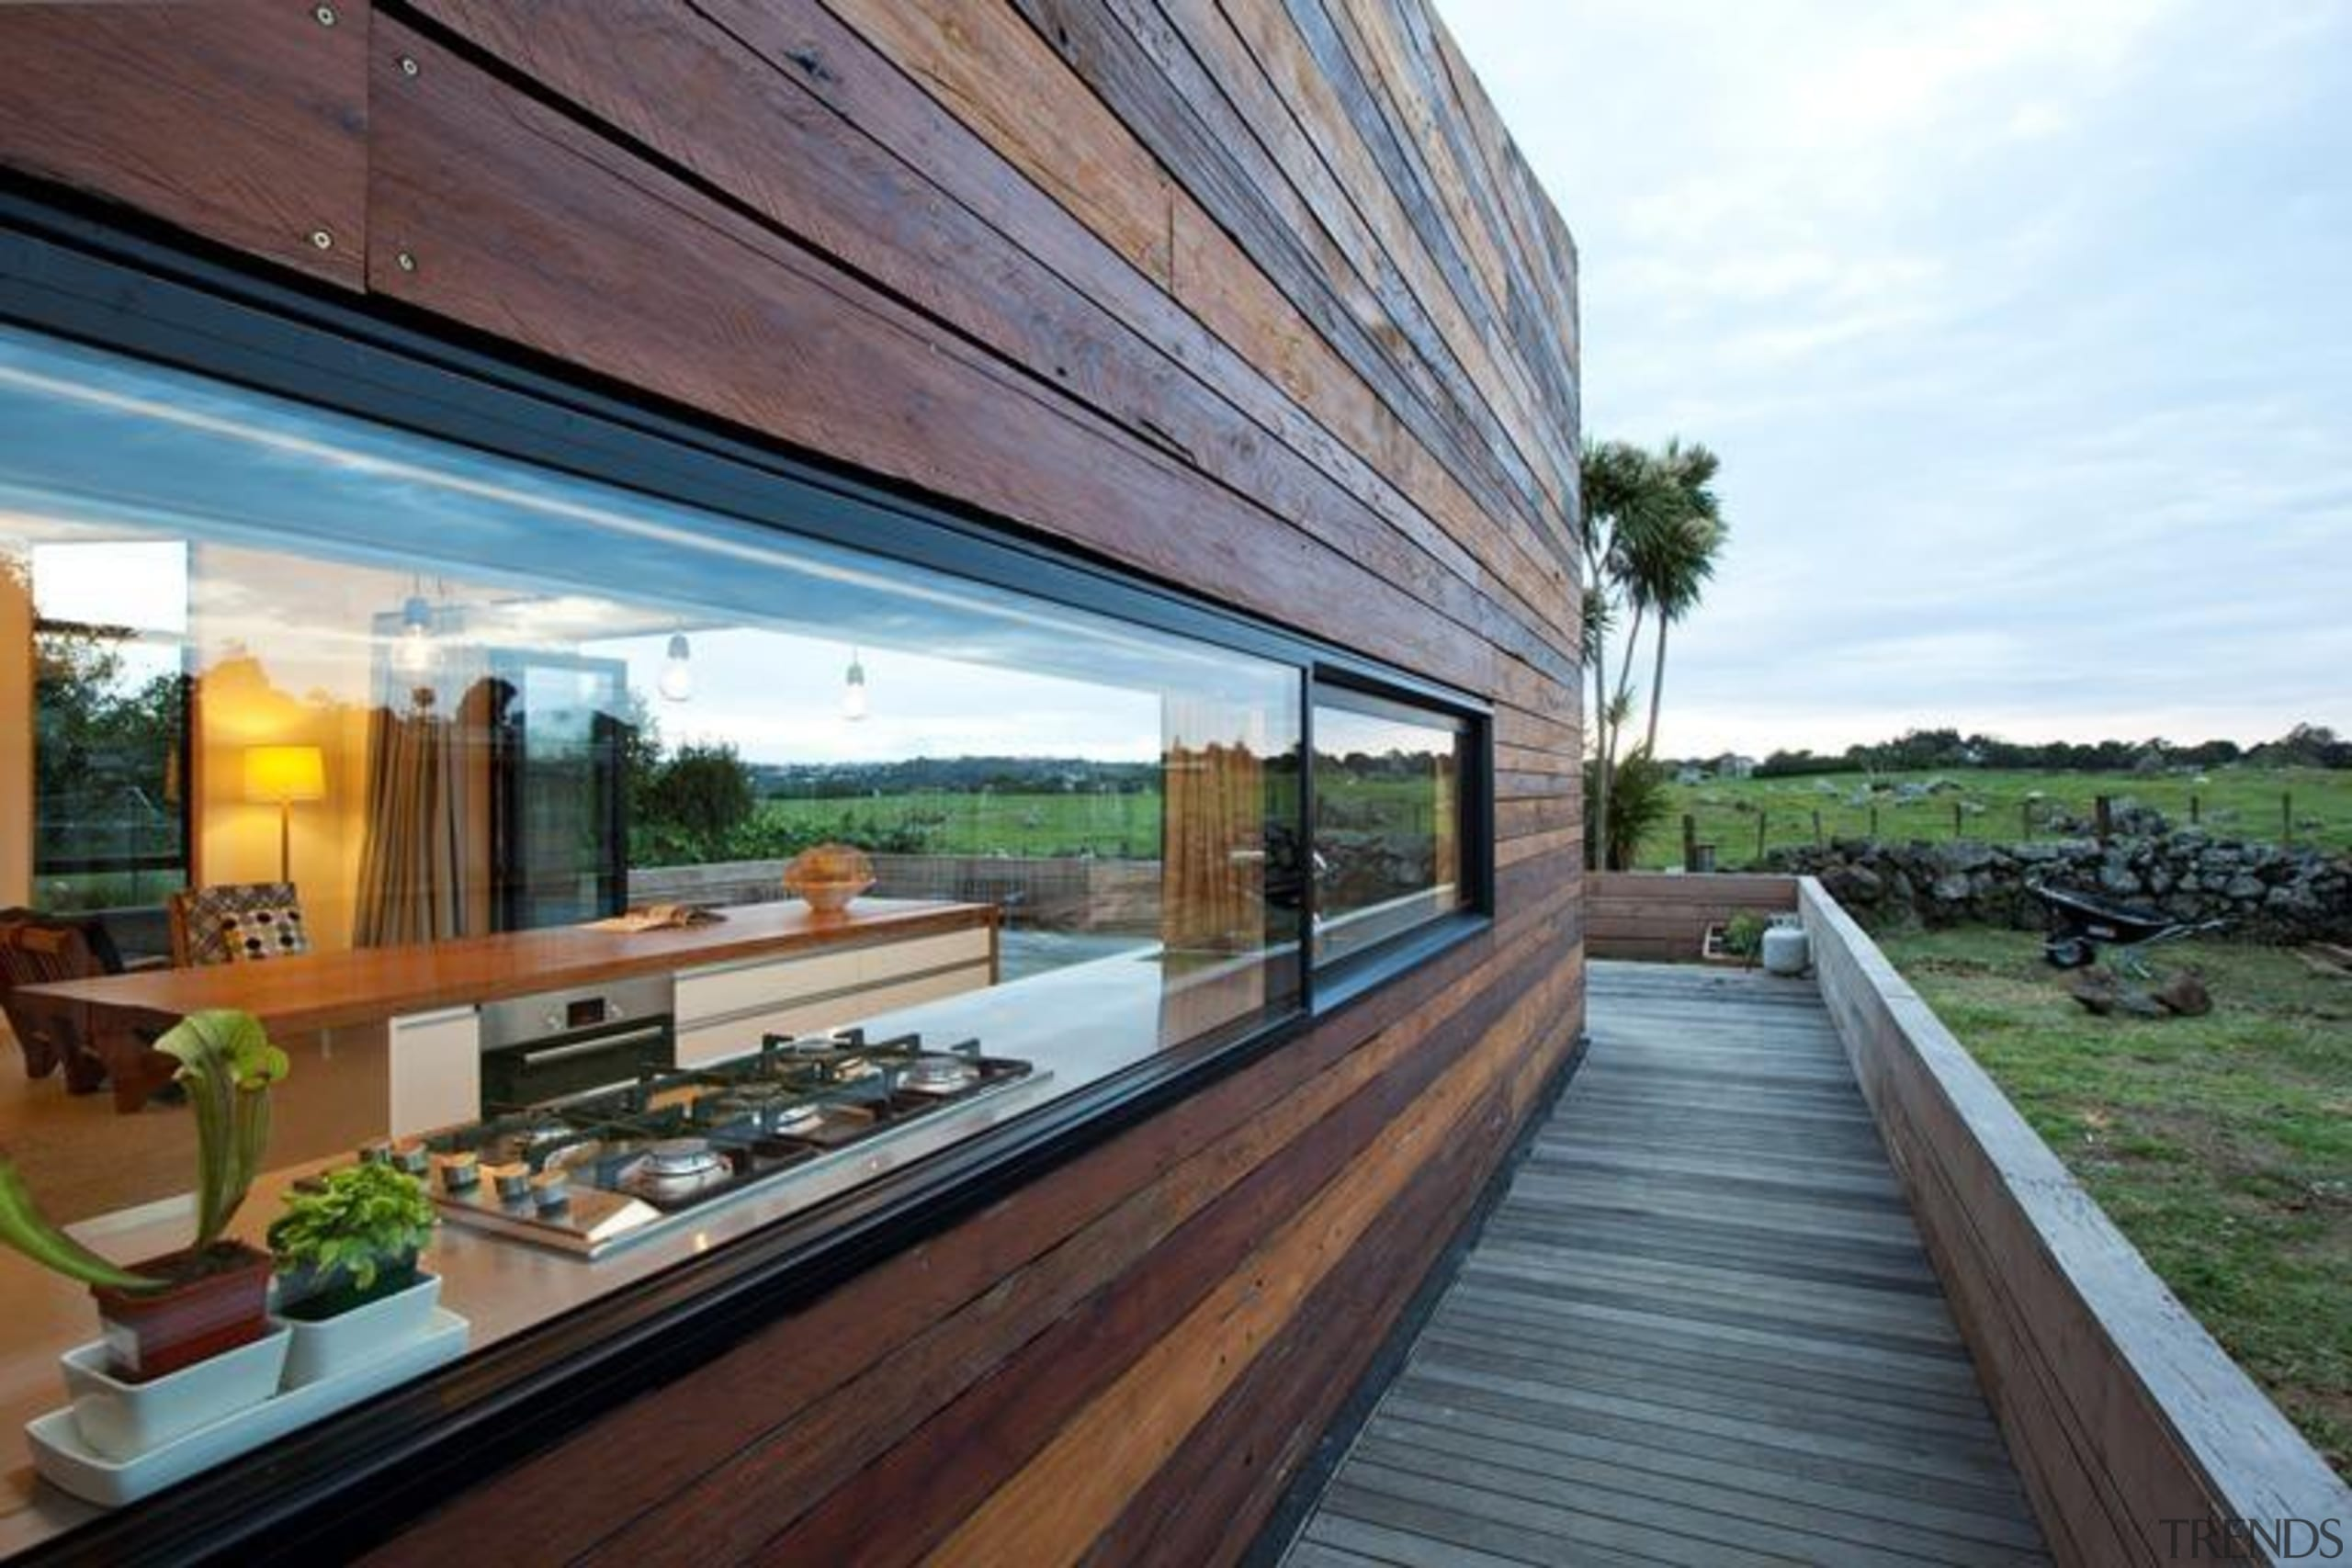 recycled timber cladding - recycled timber cladding - architecture, house, real estate, roof, gray